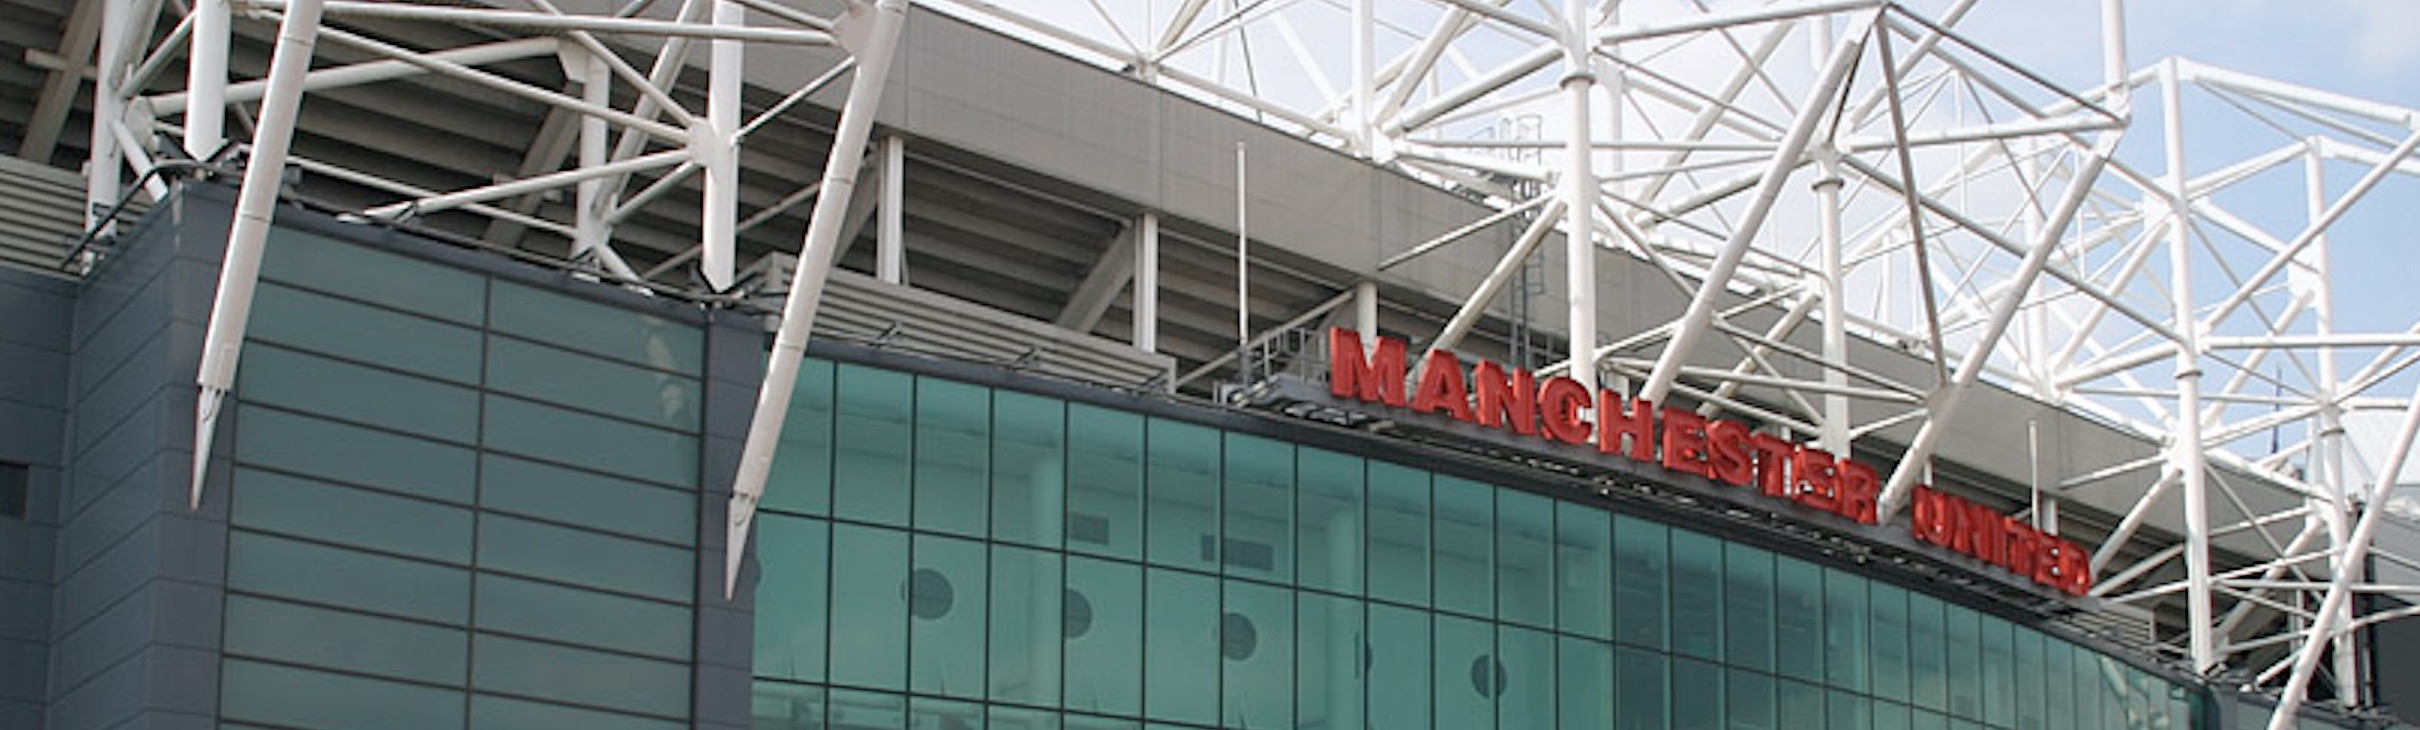 Man United V Stoke - Coach/Ferry & Hotel